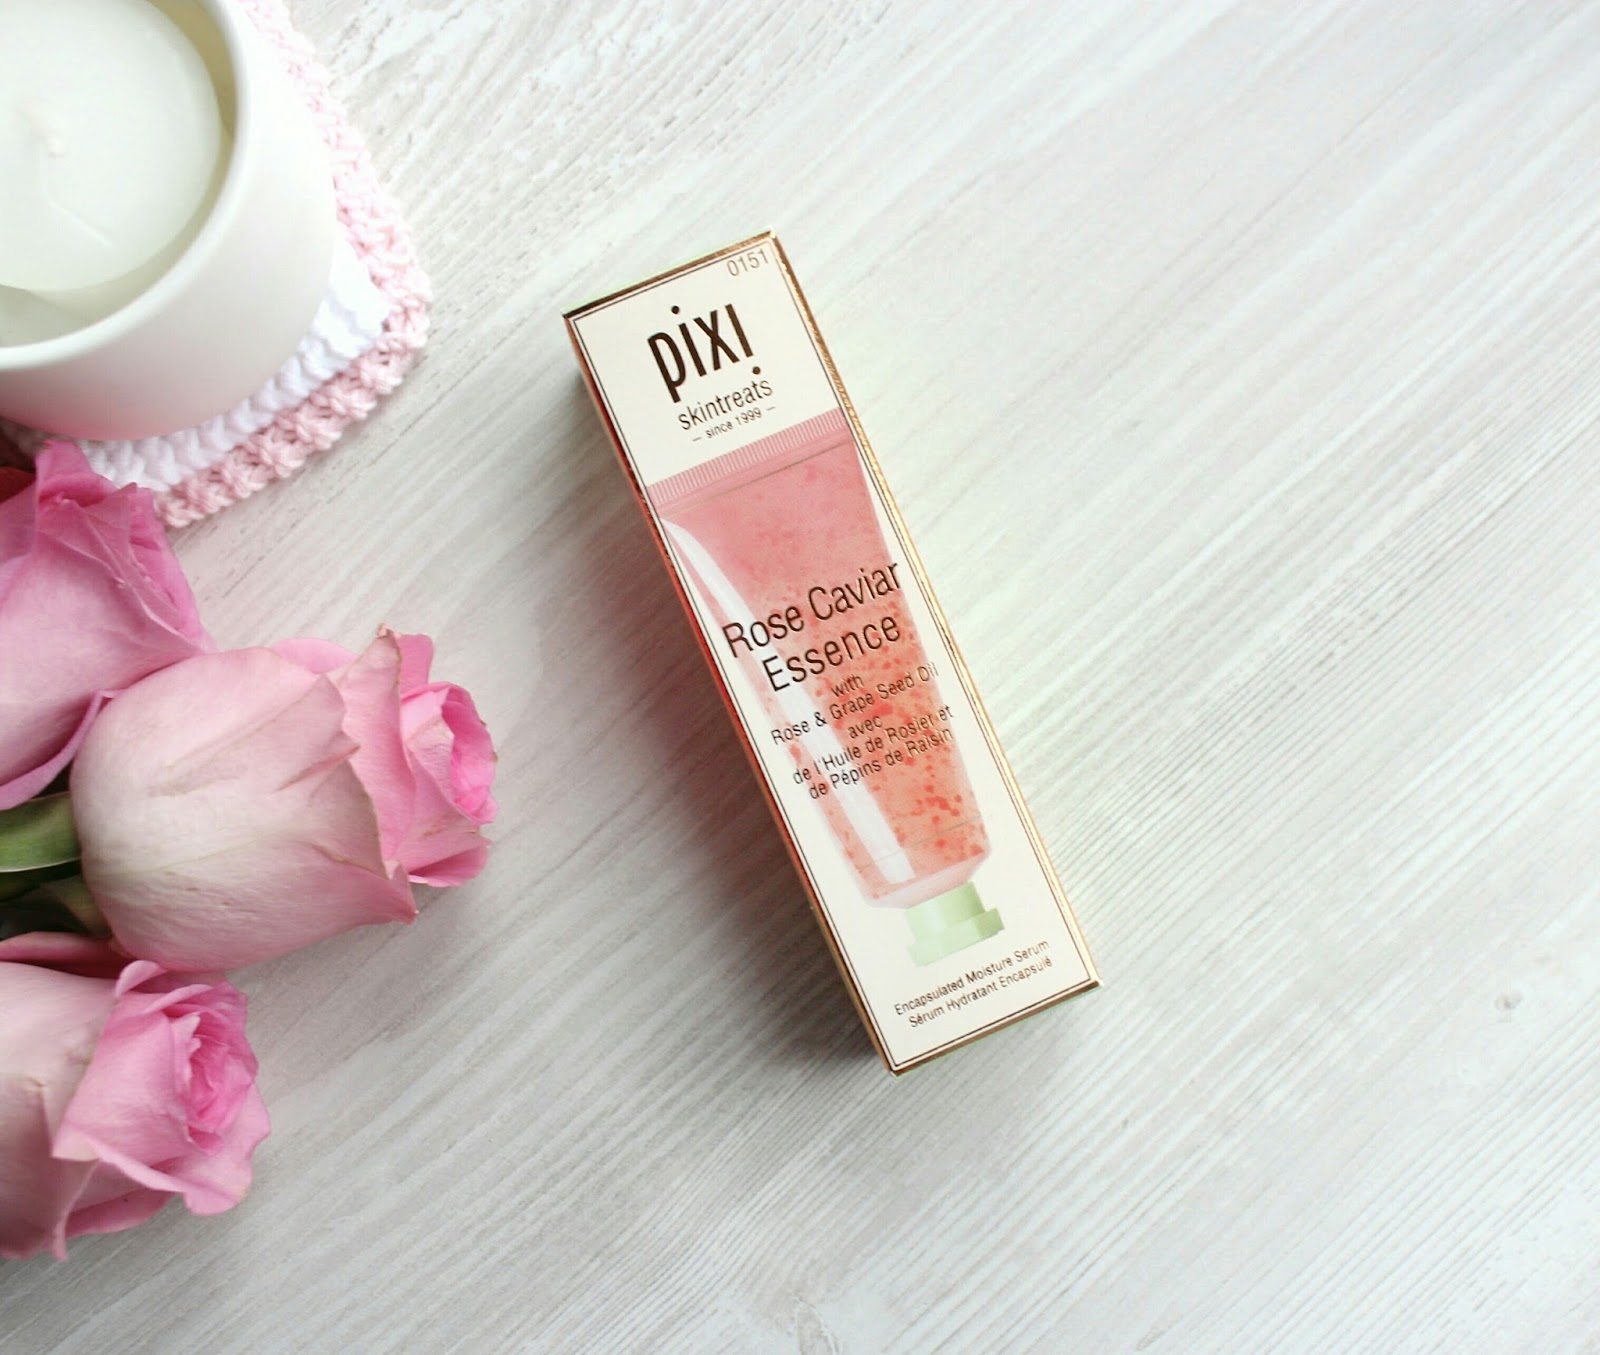 Js makeupartist beauty talk pixi rose caviar essence review first they came out with a collaboration with caroline hirons creating the double cleanse which was one of the most coveted beauty products at the izmirmasajfo